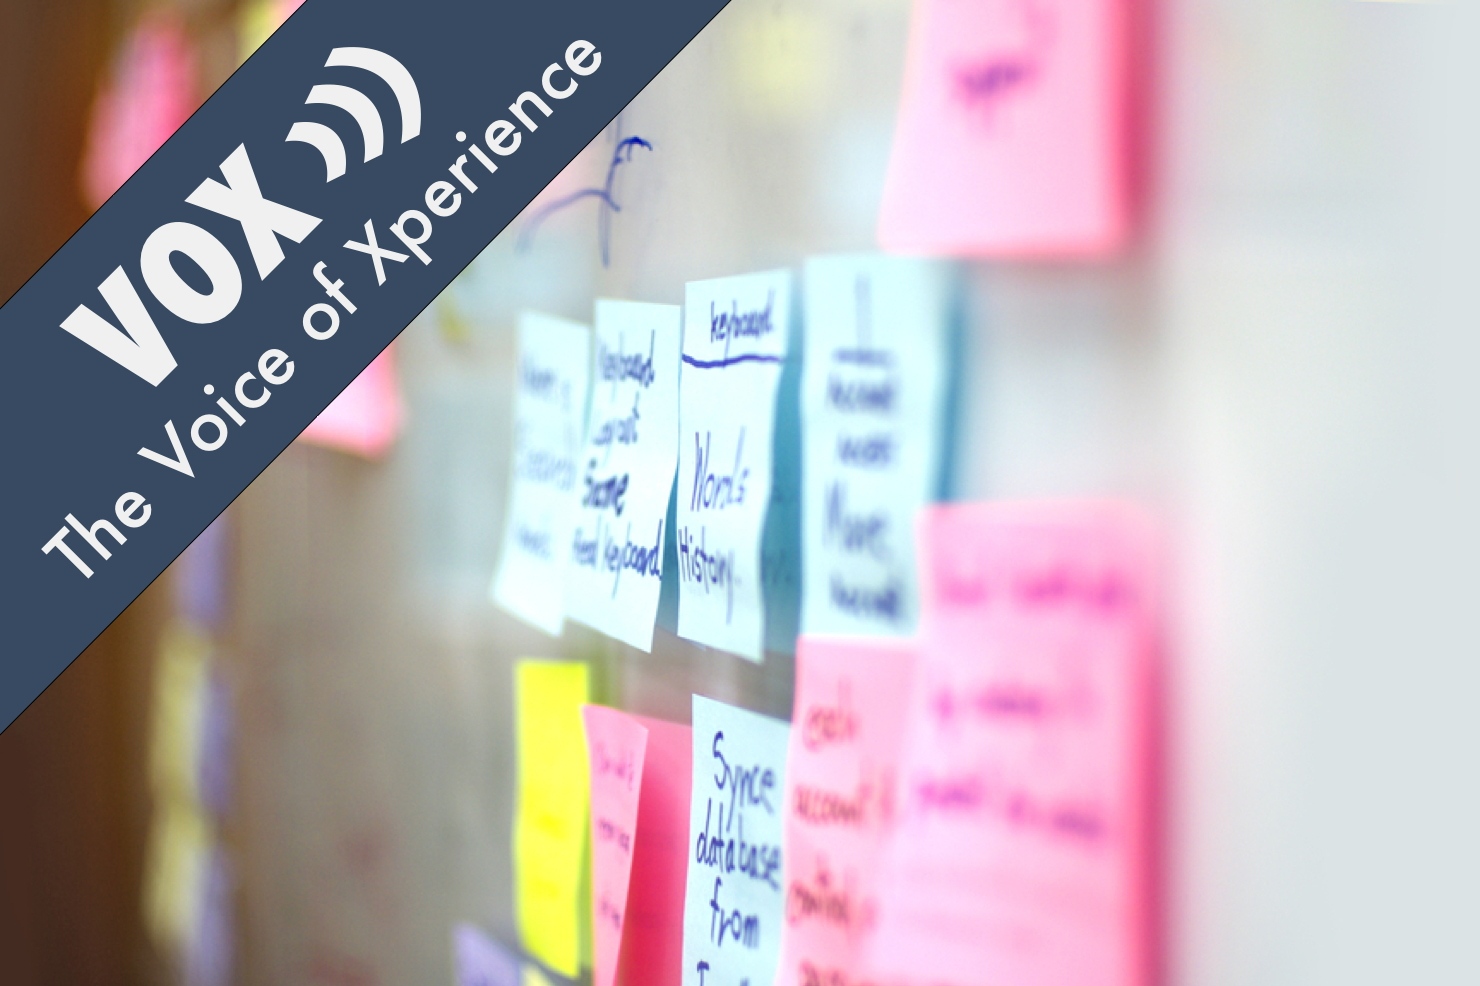 How I Learned to Stay Organized with Evernote, Post-its & Foamcore